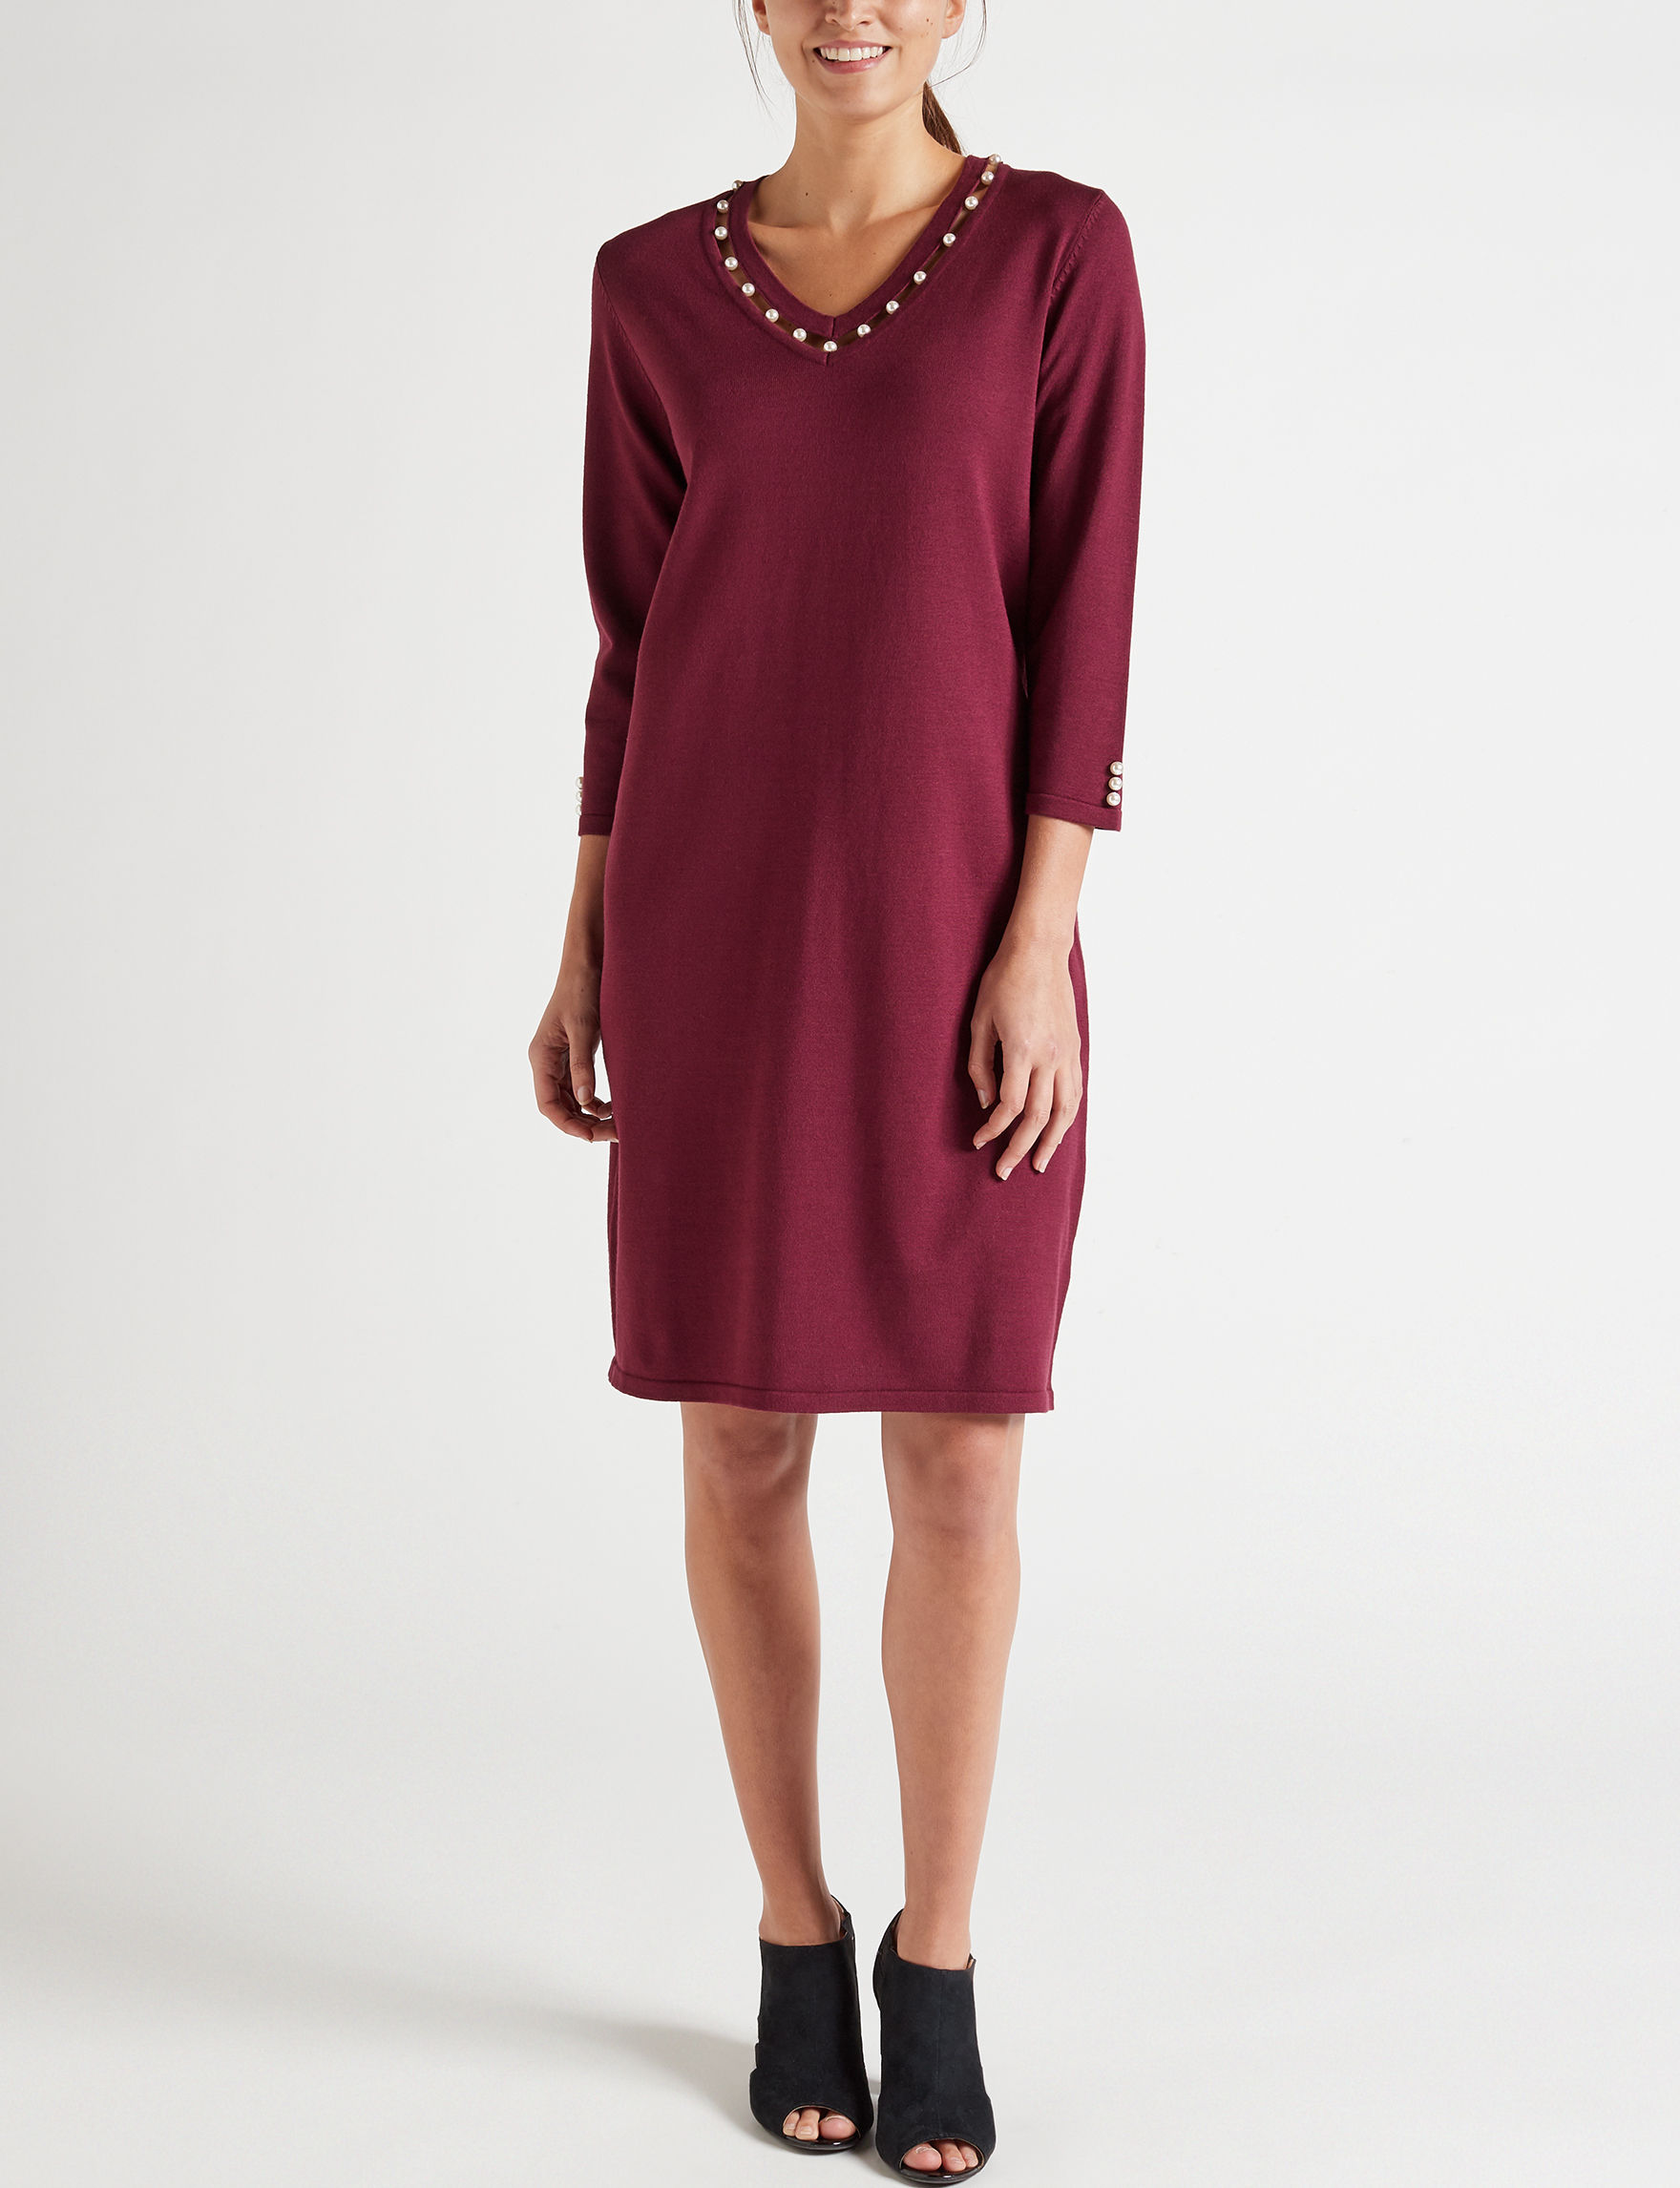 Harlow & Rose Burgundy Everyday & Casual Sweater Dresses